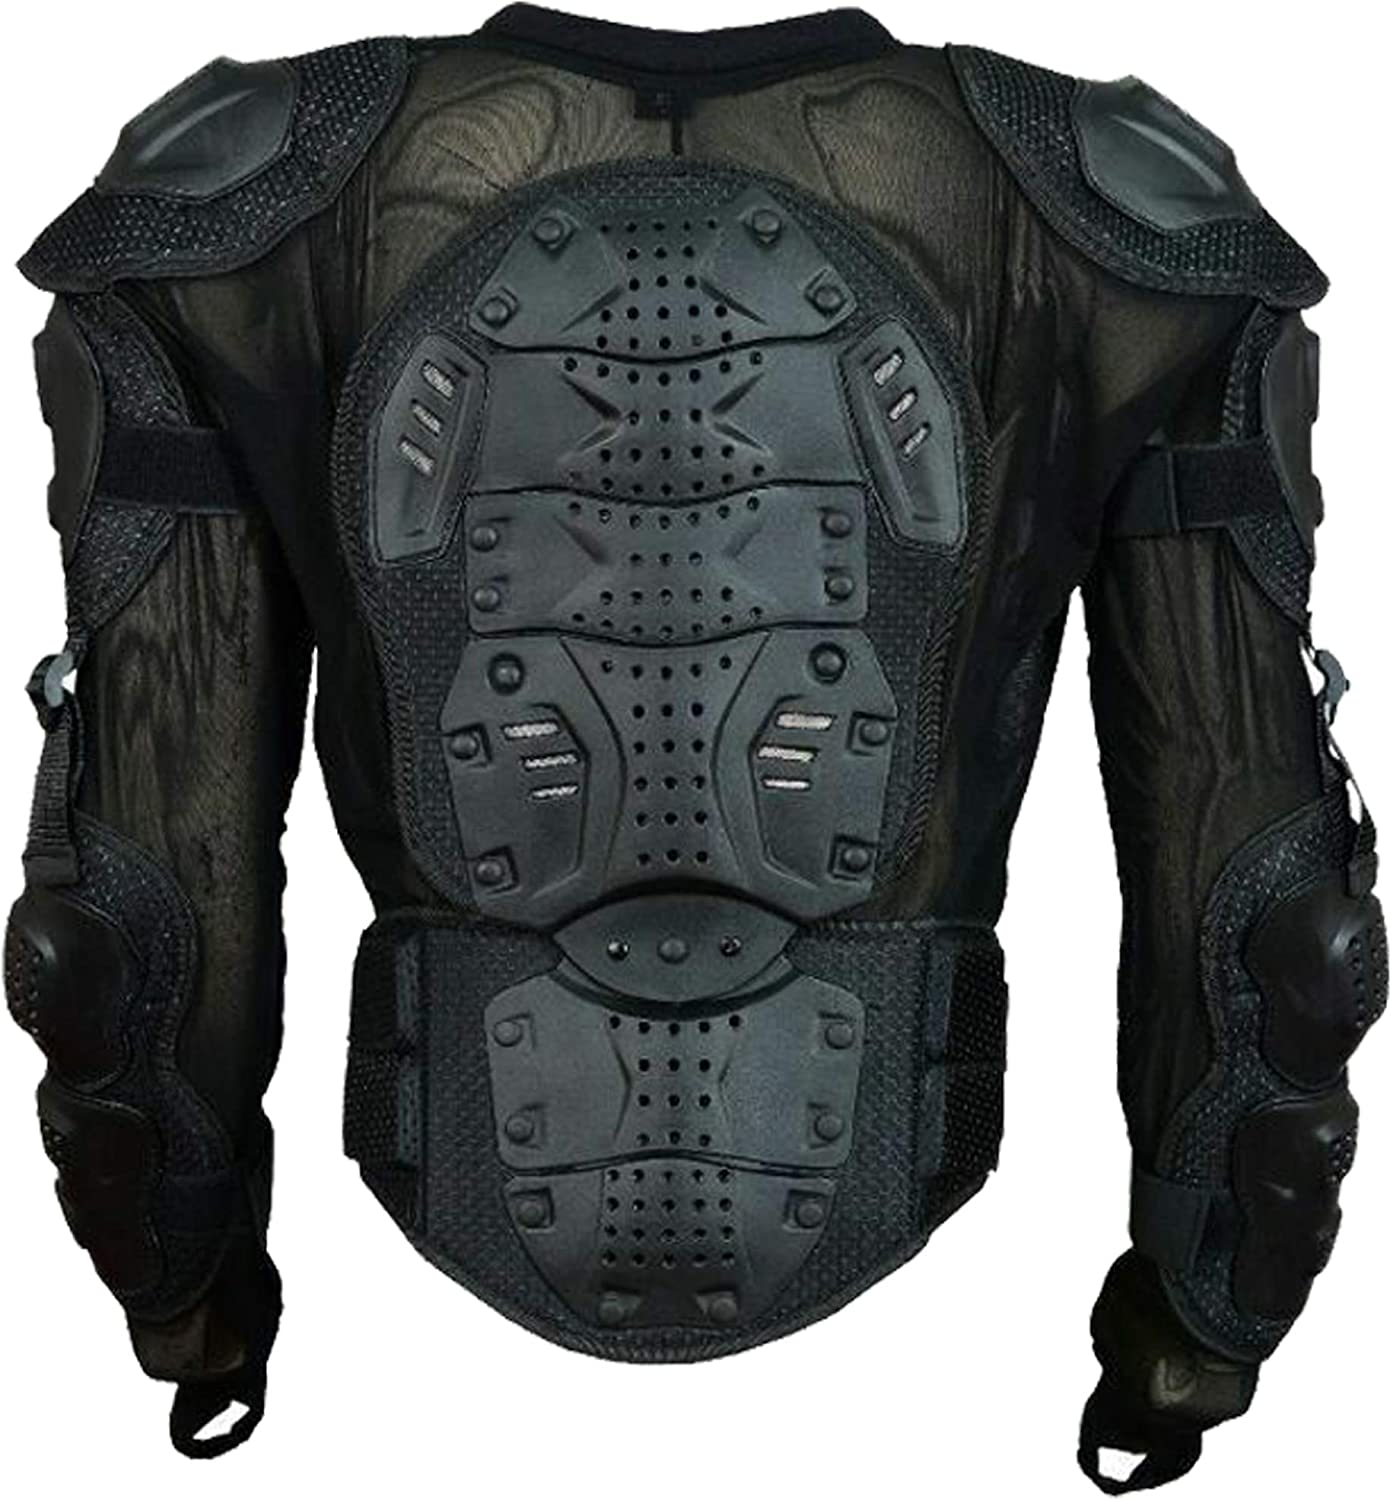 Men/'s Motorcycle Body Protective Jacket Guard Motorbike Motorcross Armour Armor Racing Clothing Protection/ Black 2XL//3XL